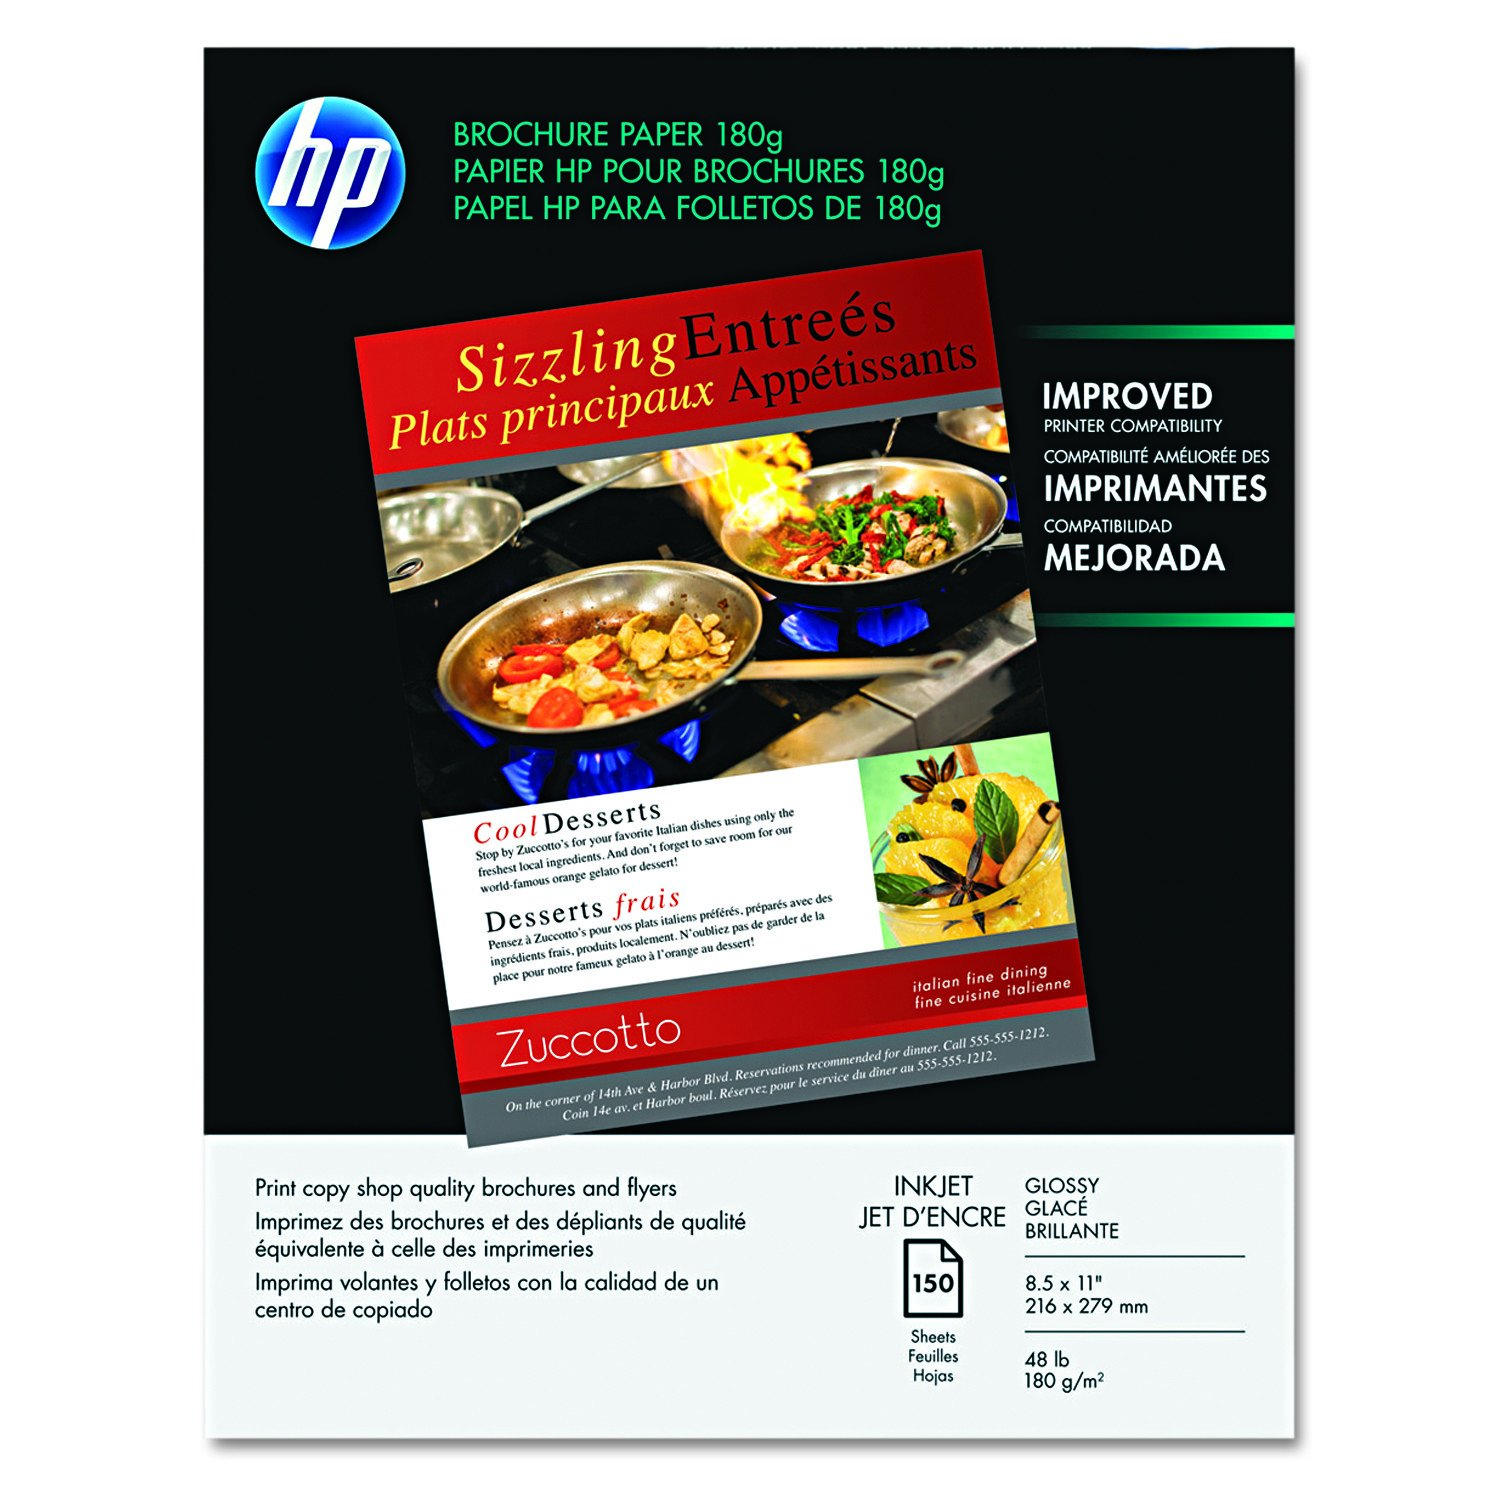 HP Brochure Paper, Glossy (150 Sheets, 8.5 x 11 Inches, 180 g) 92 Brightness Q1987A